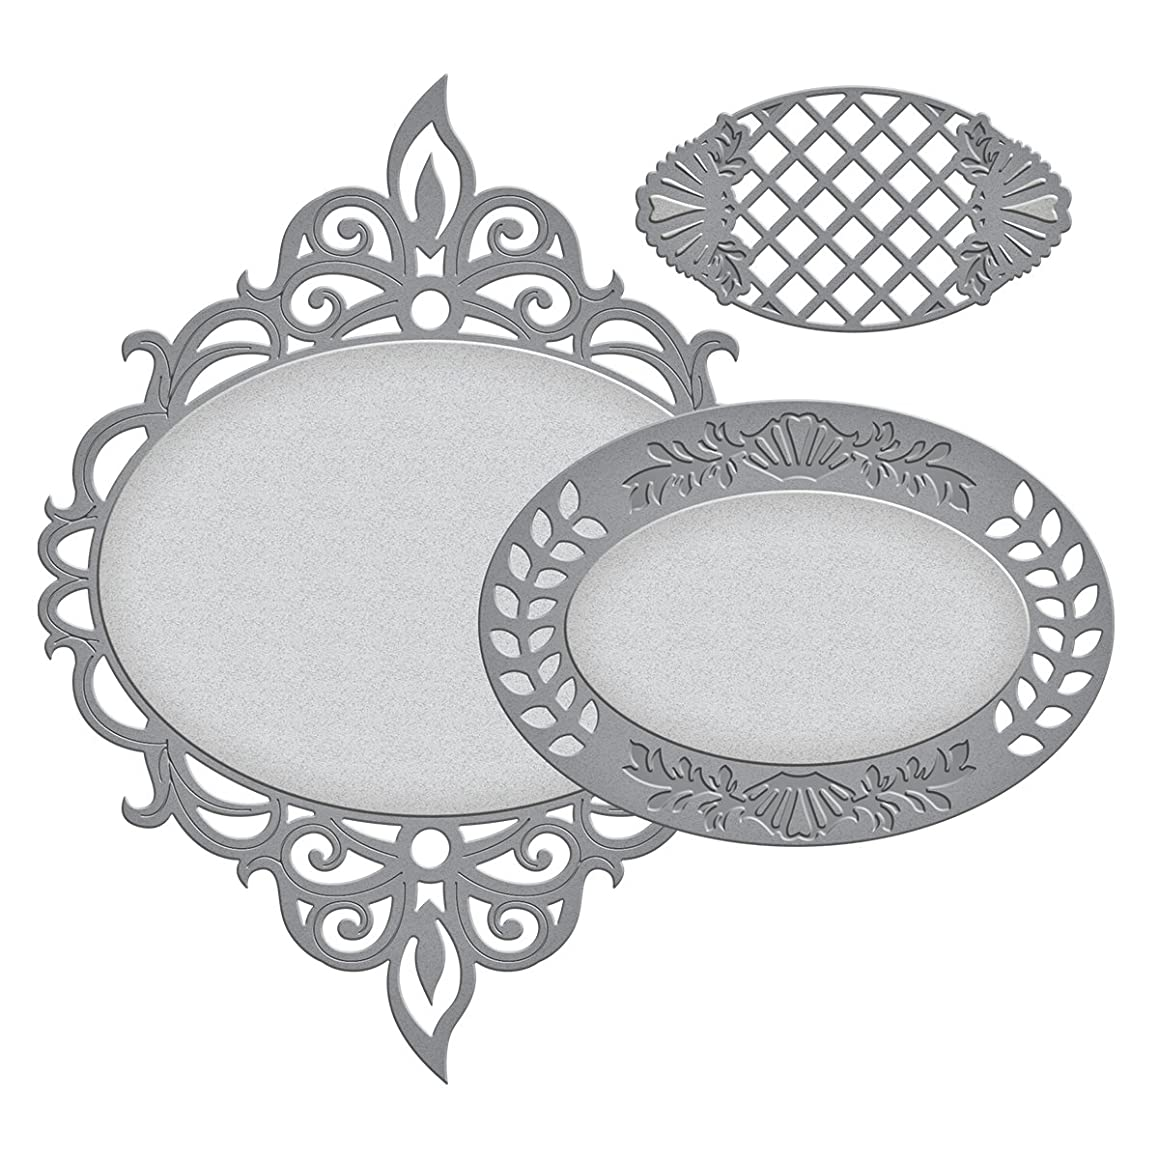 Spellbinders S4-541 Nestabilities Majestic Oval Deco Accent Etched/Wafer Thin Dies